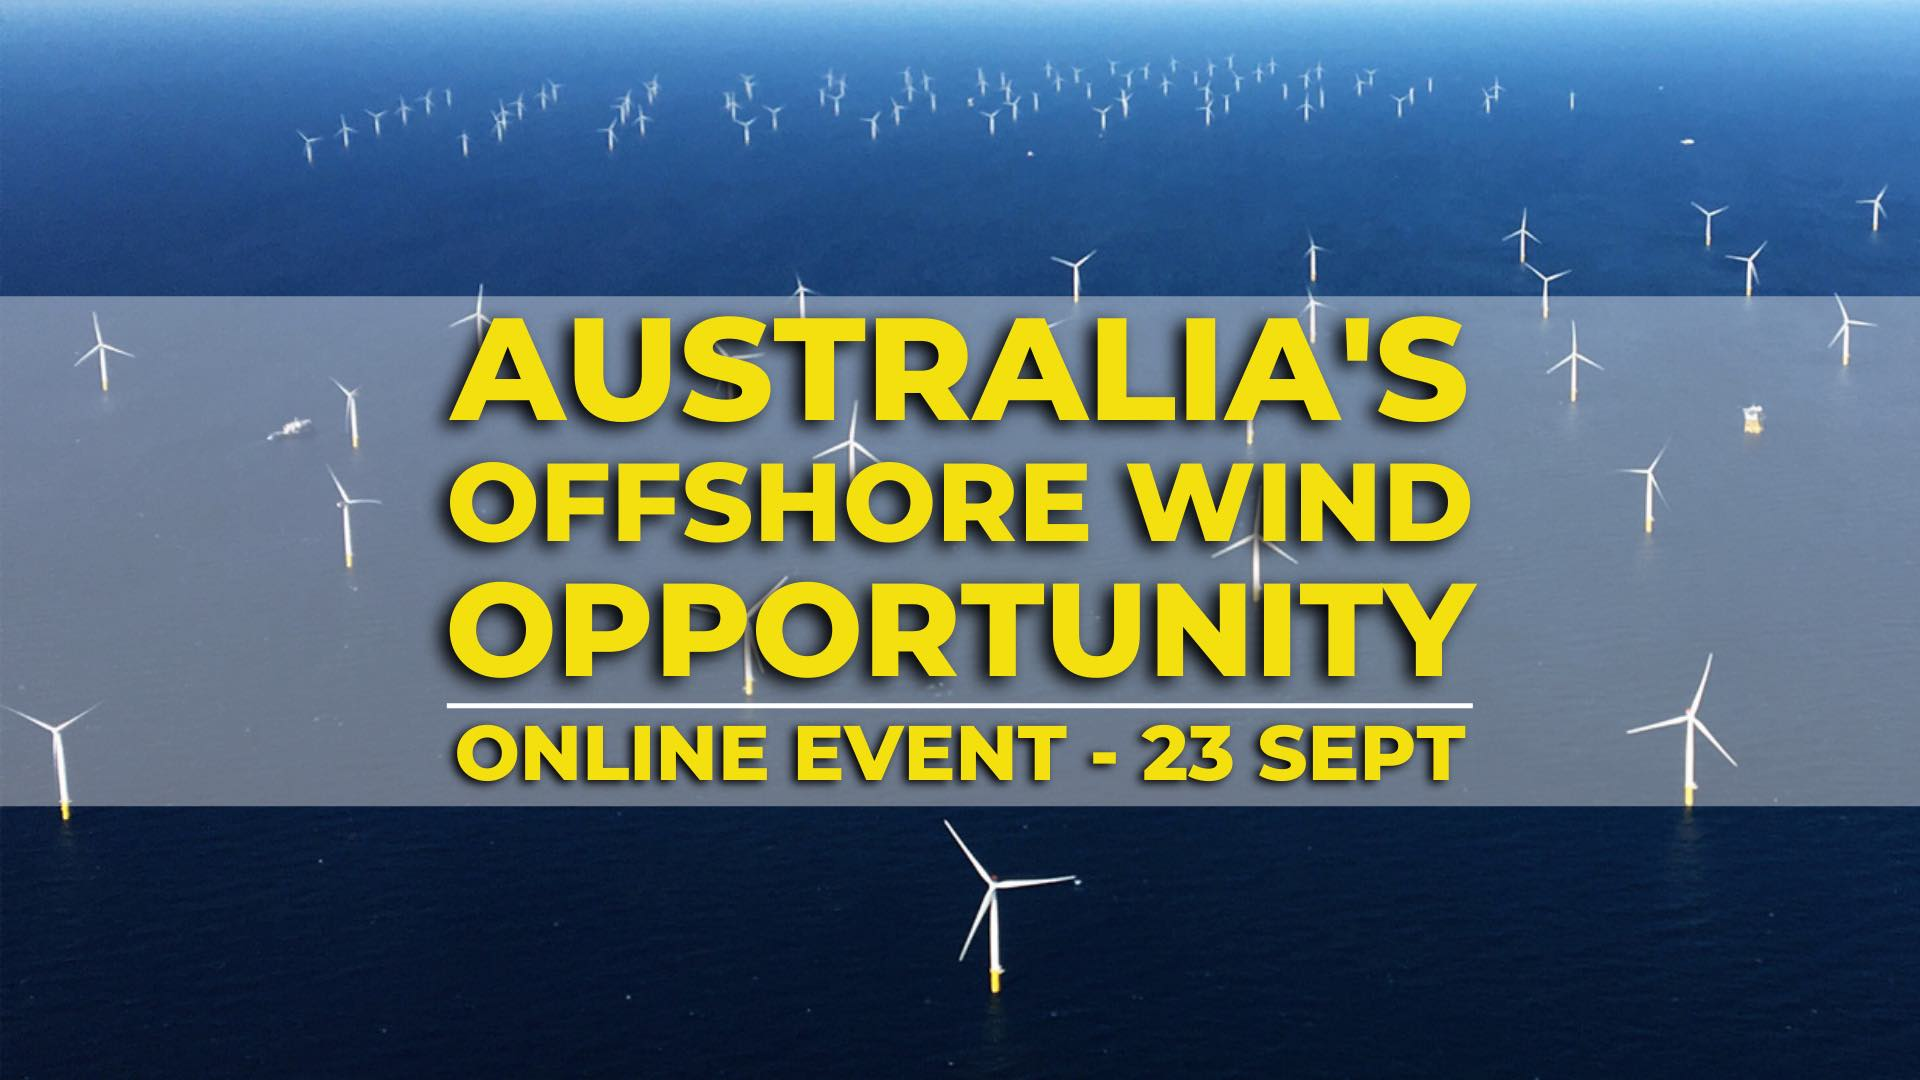 Opportunities for offshore wind event